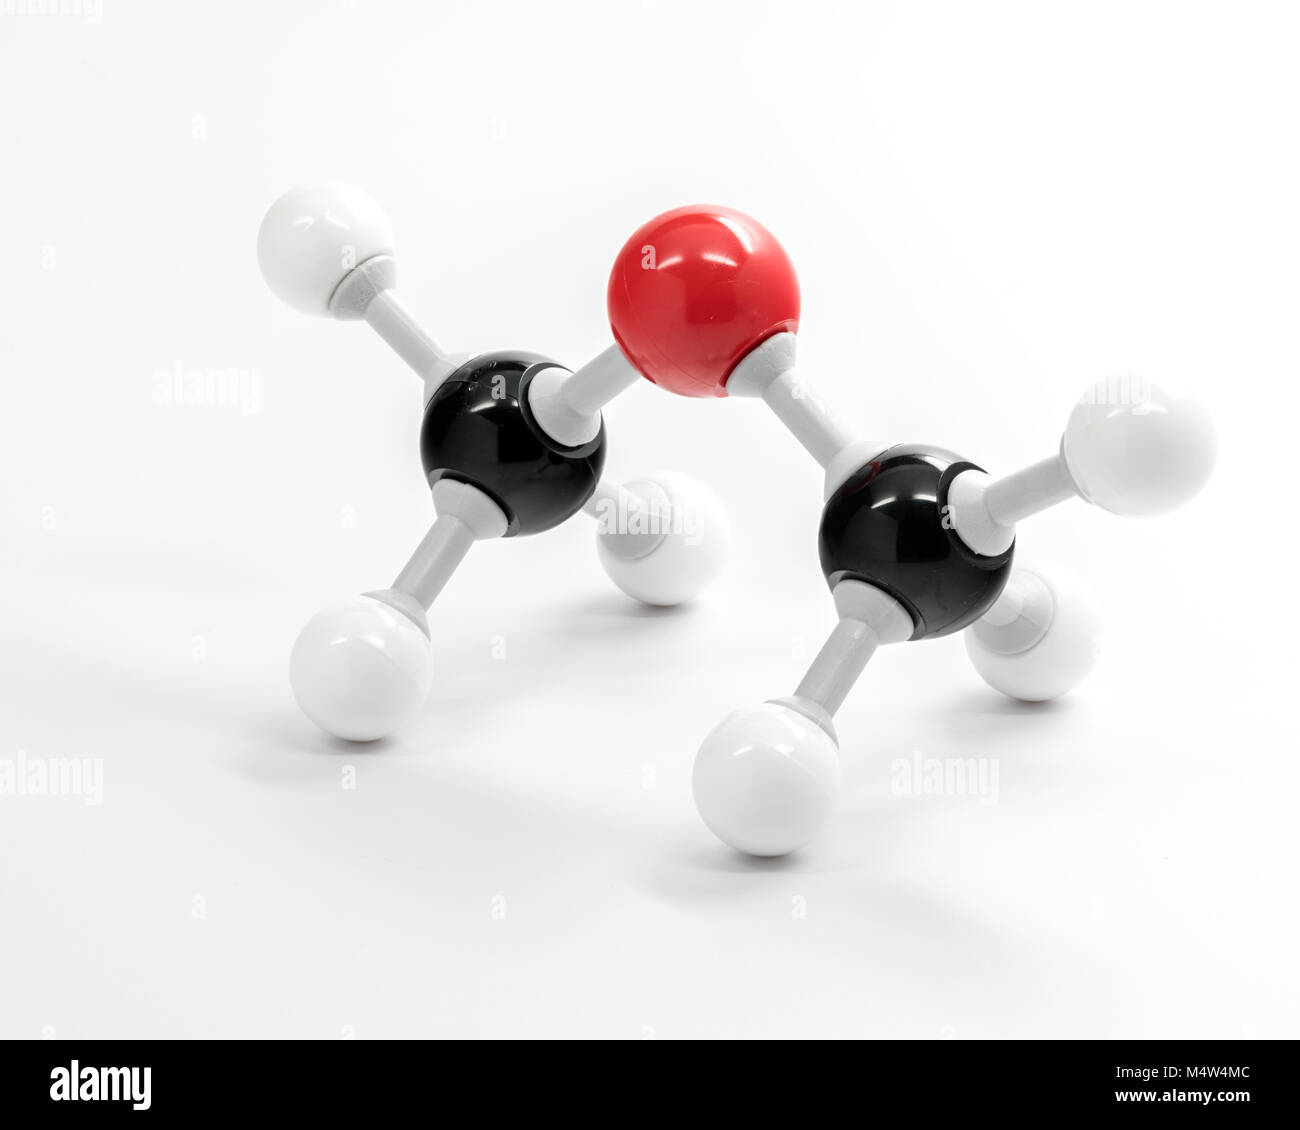 Periodic table of elements molecule on a white background - Stock Image